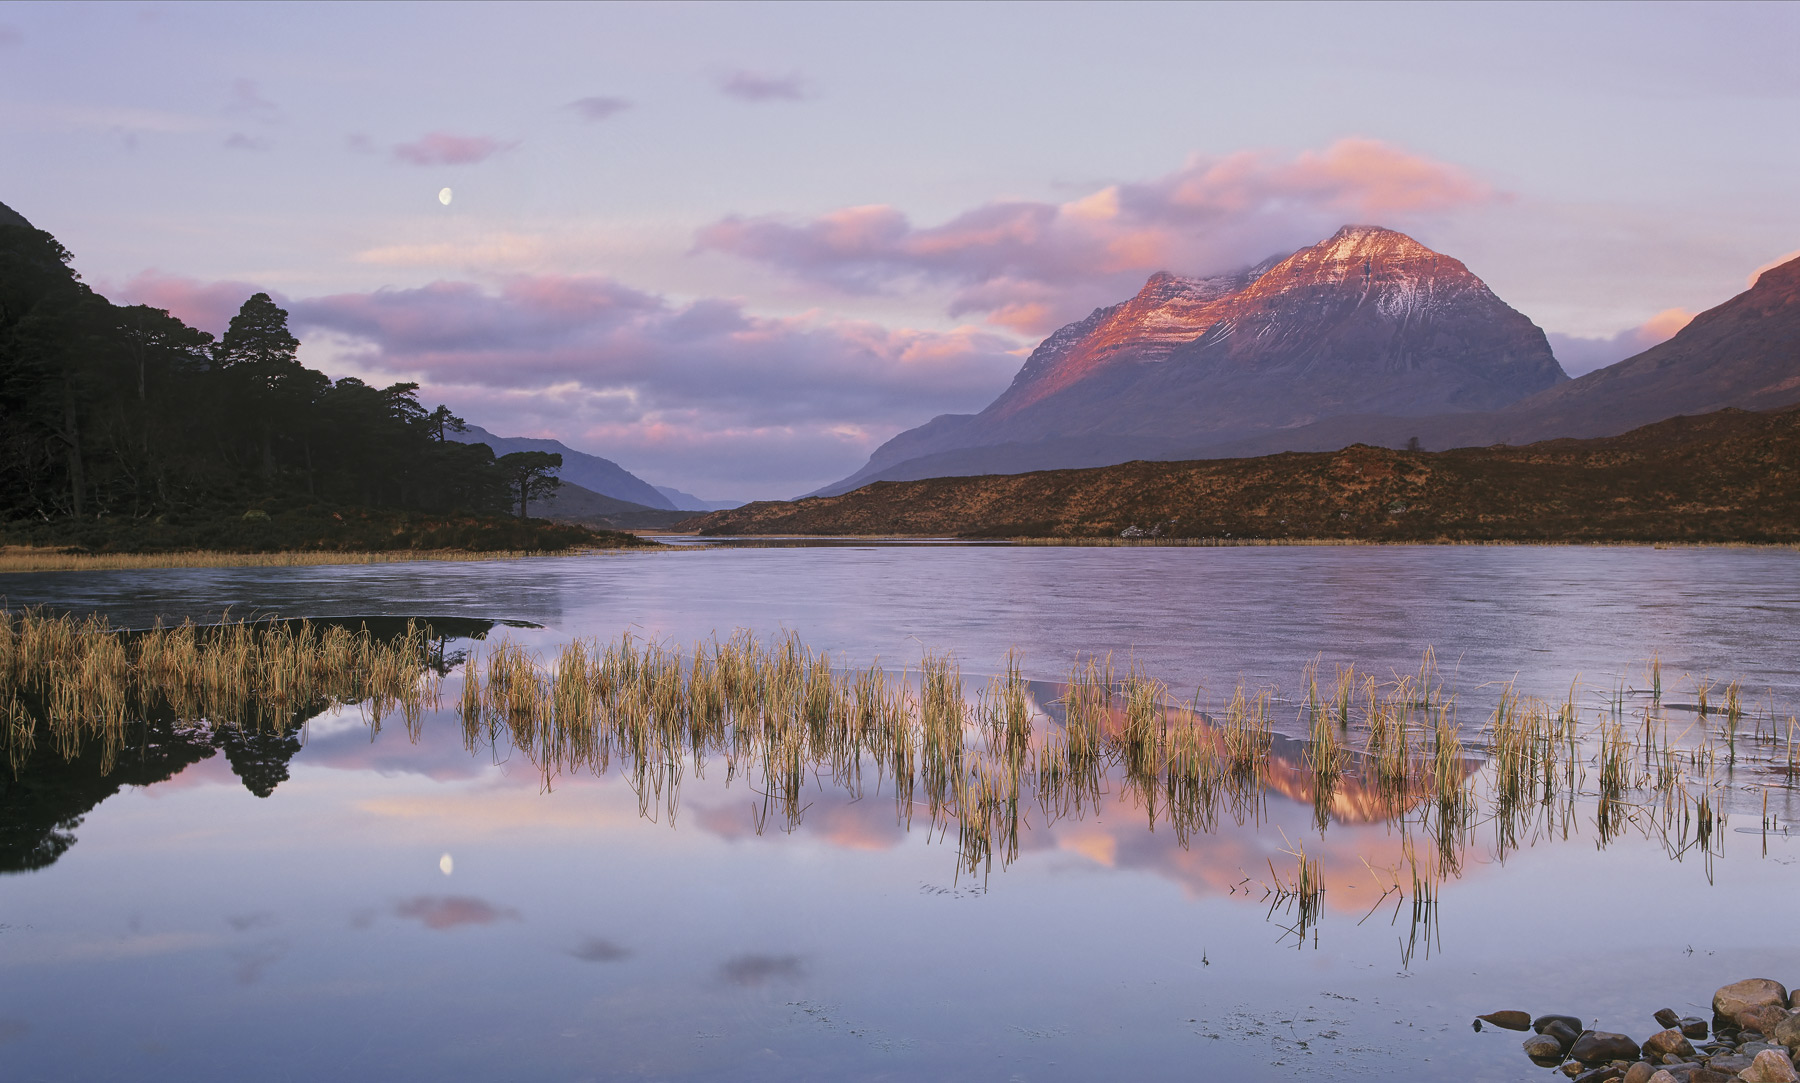 Moonset Clair, Loch Clair, Torridon, Scotland, Liathach, strawberry, topping, sunrise, pinkening, clouds, frozen, clarit, photo